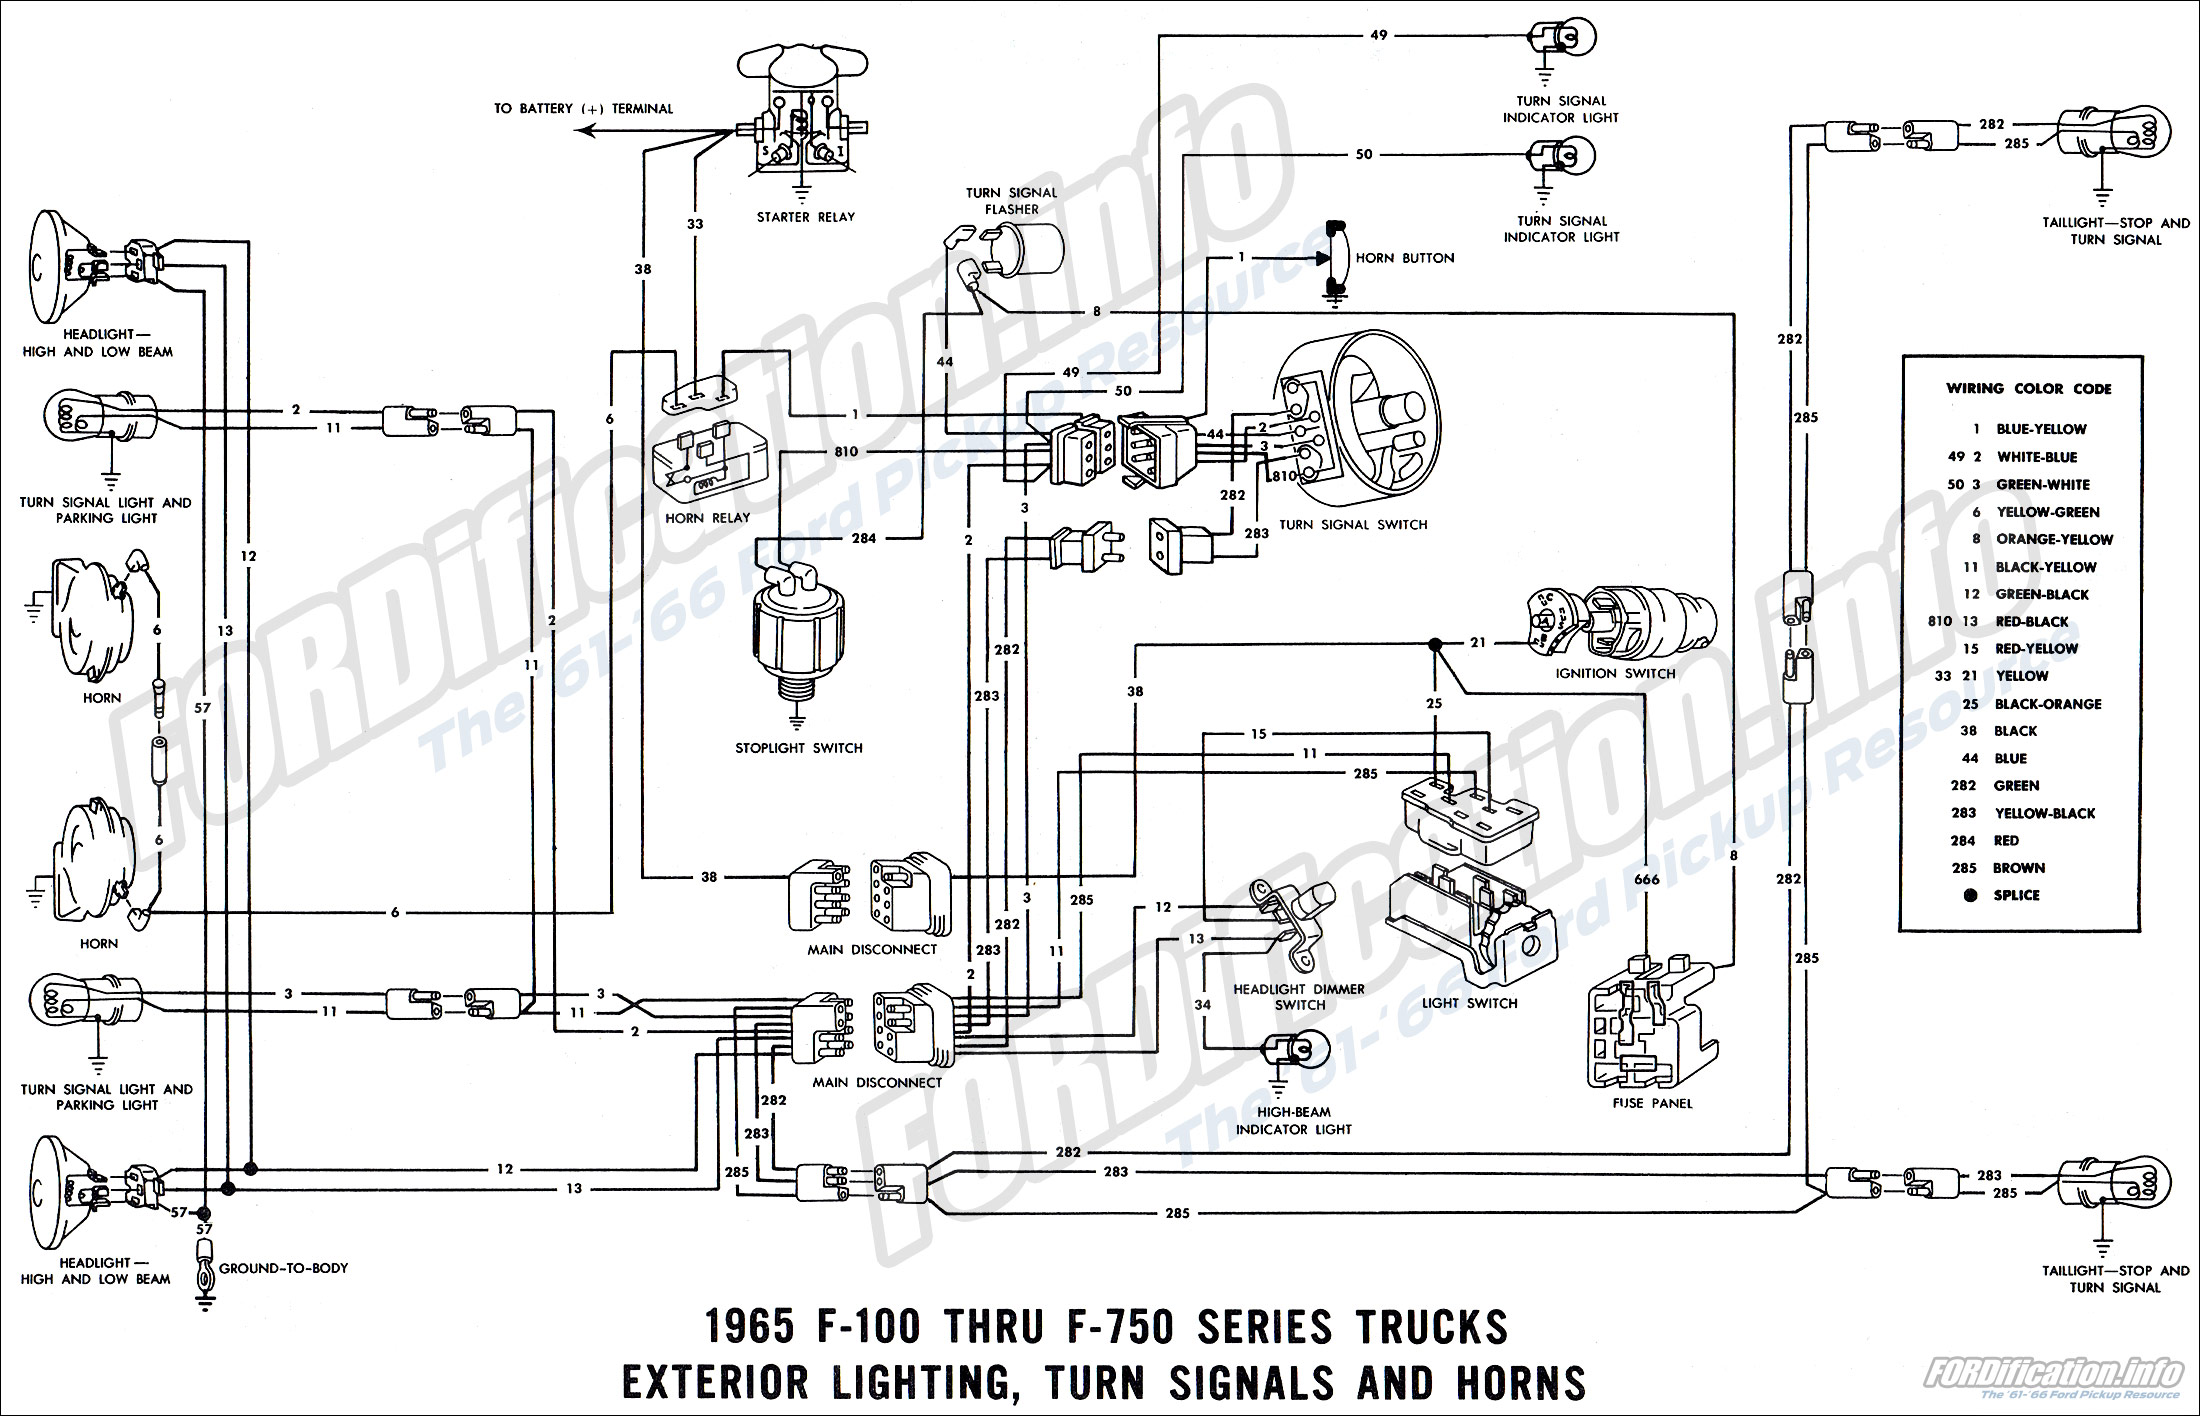 1958 Ford F100 Wiring Diagram Data Likewise 1956 Car On Chevy Schematic For 1963 F 100 Schema Diagrams 1979 Alternator